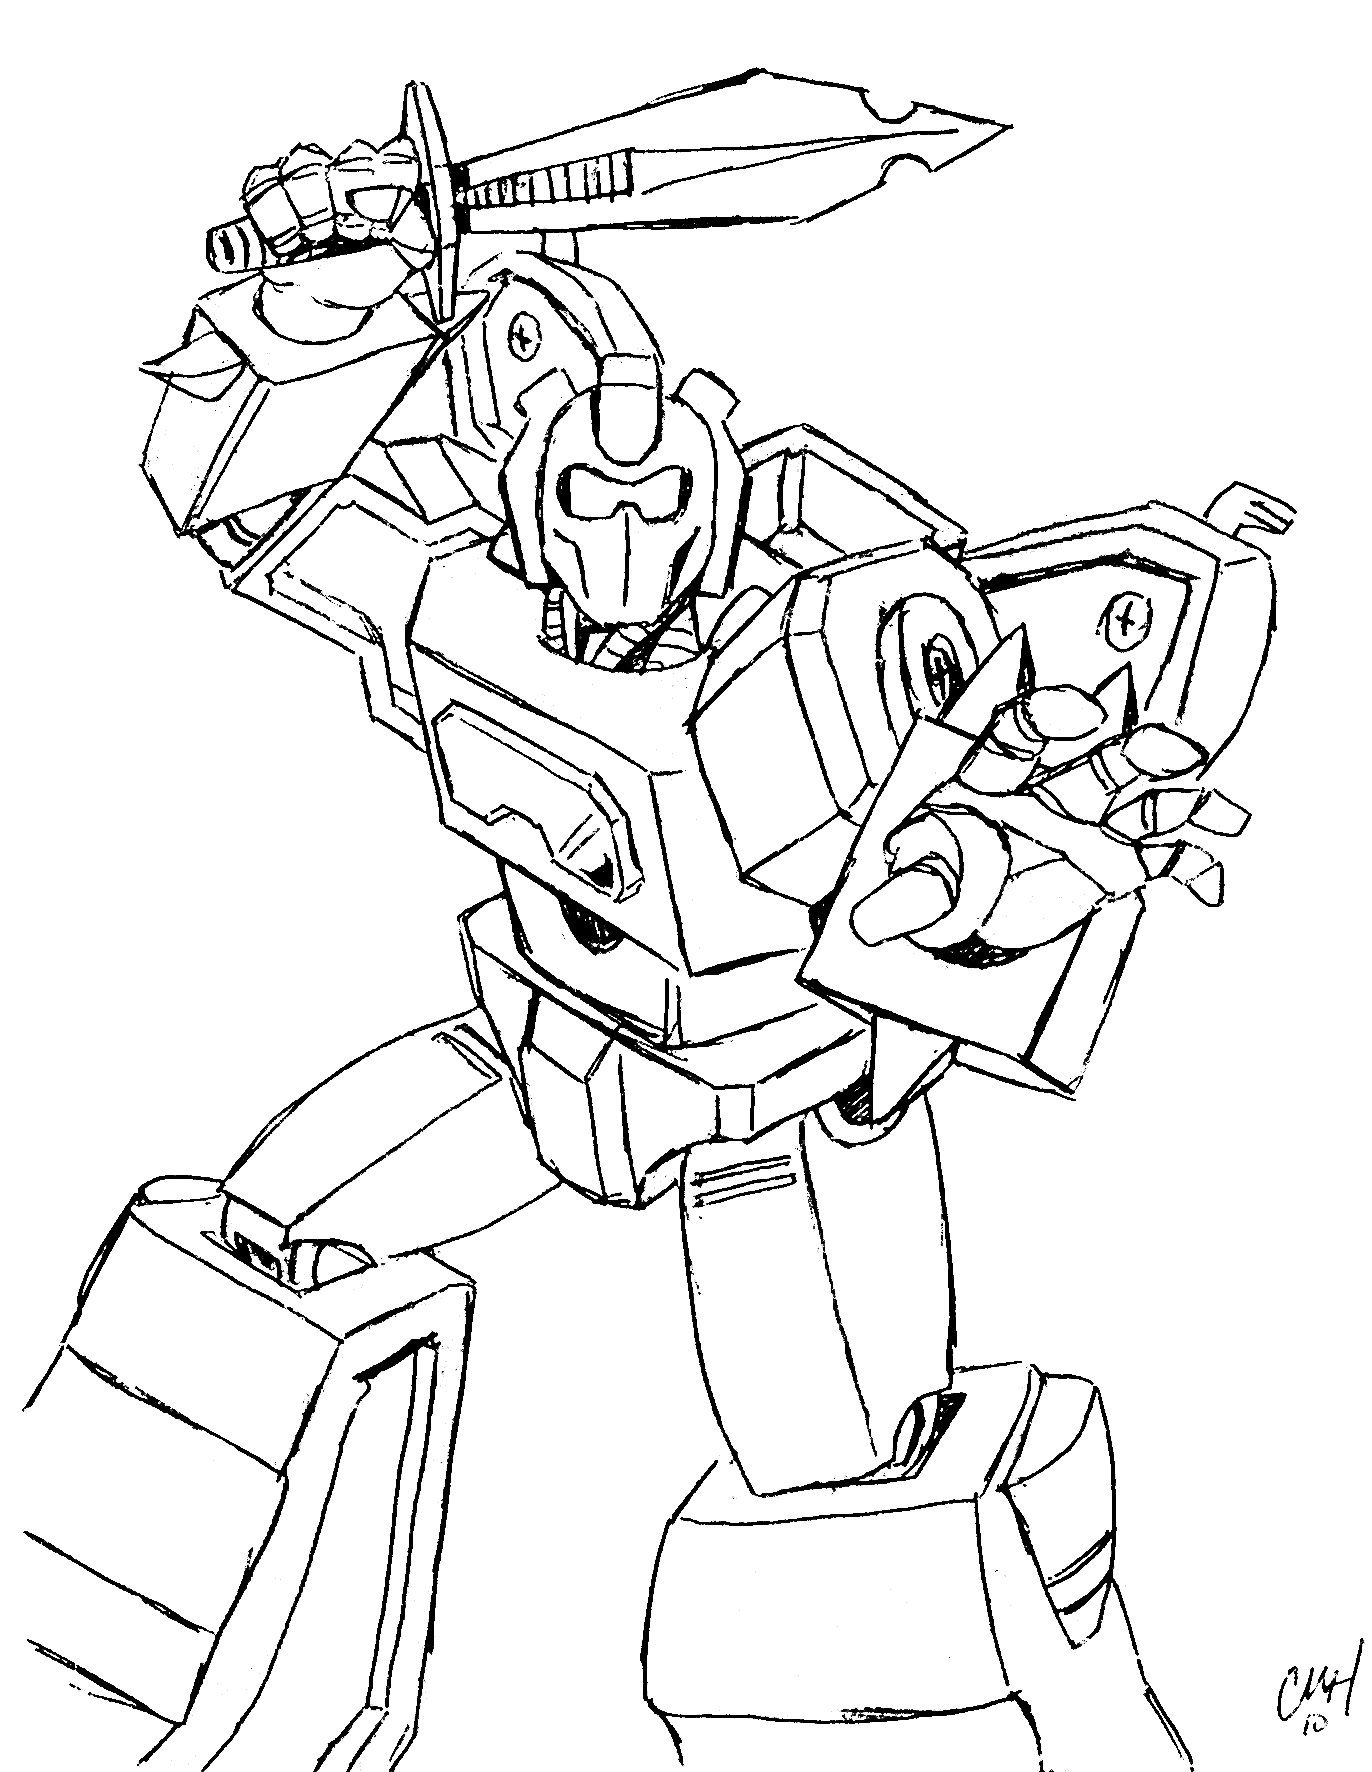 Free coloring pages online for free - Transformers Printable Coloring Pages Free Printable Transformers Coloring Pages For Kids